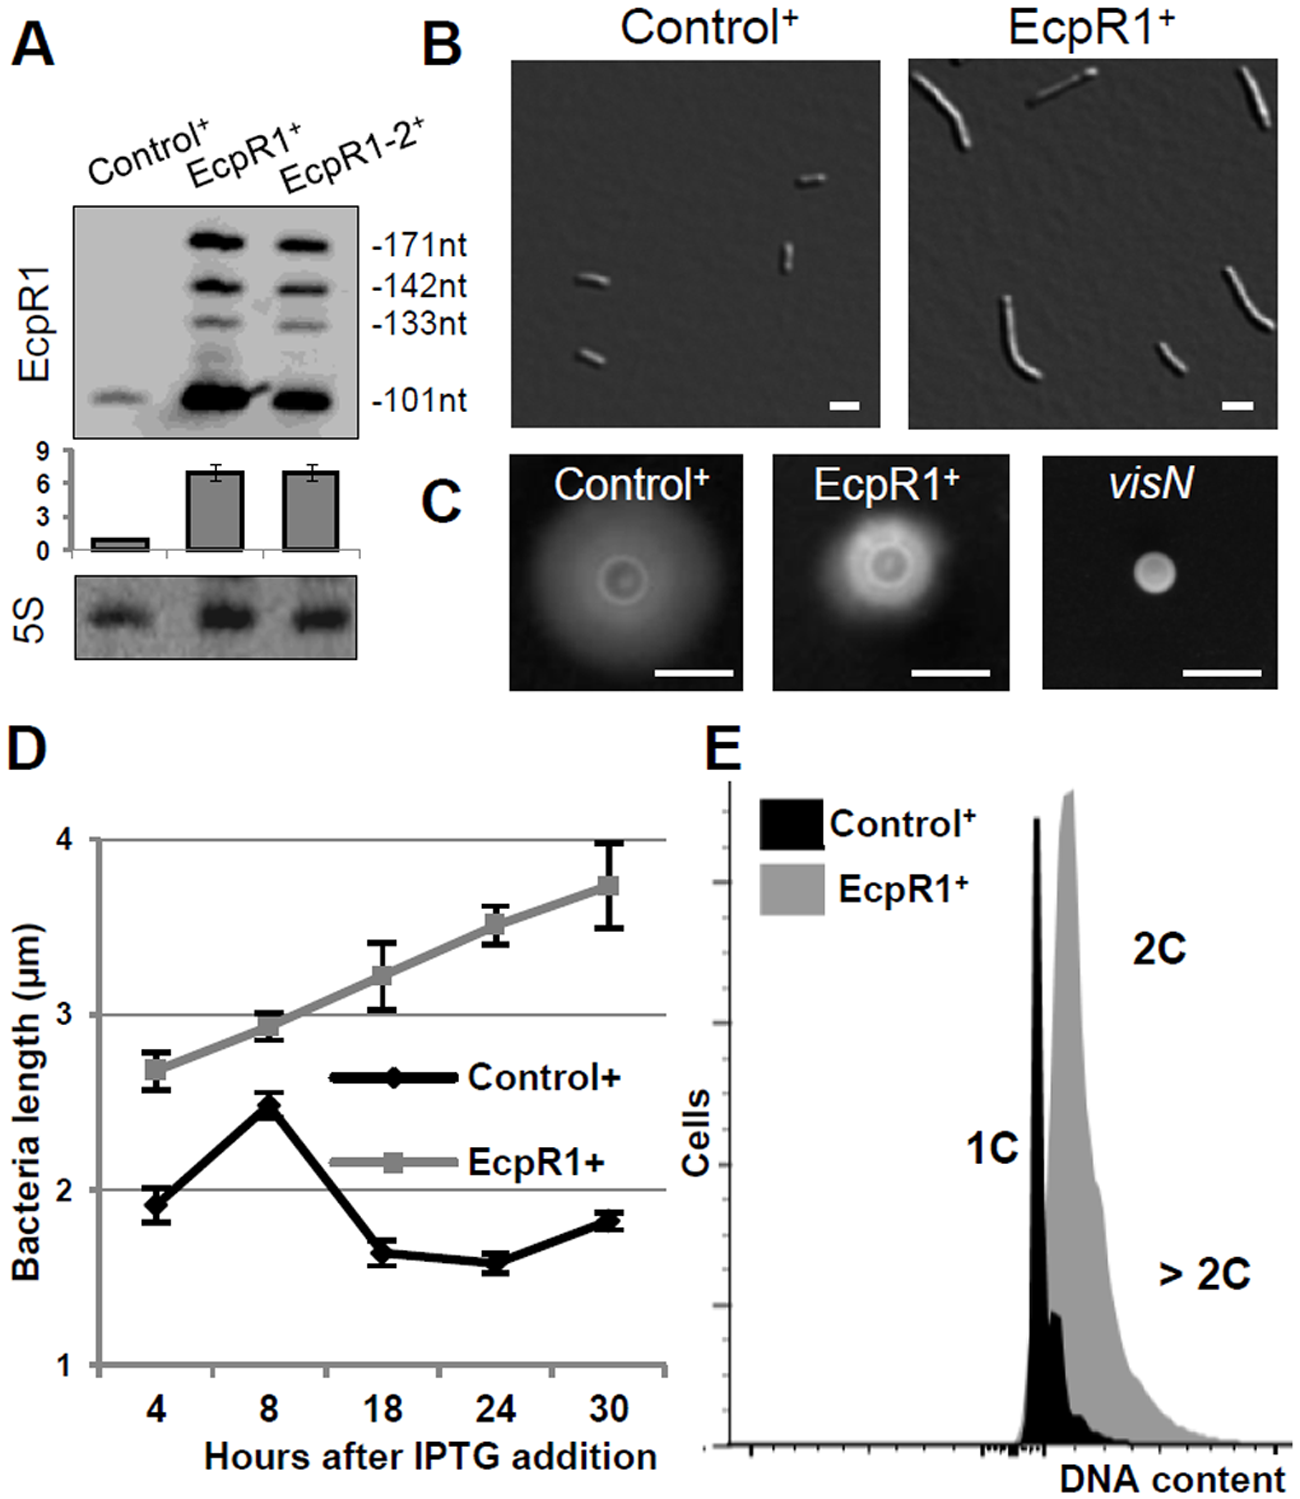 Elongated cell phenotype induced by <i>ecpR1</i> overexpression.